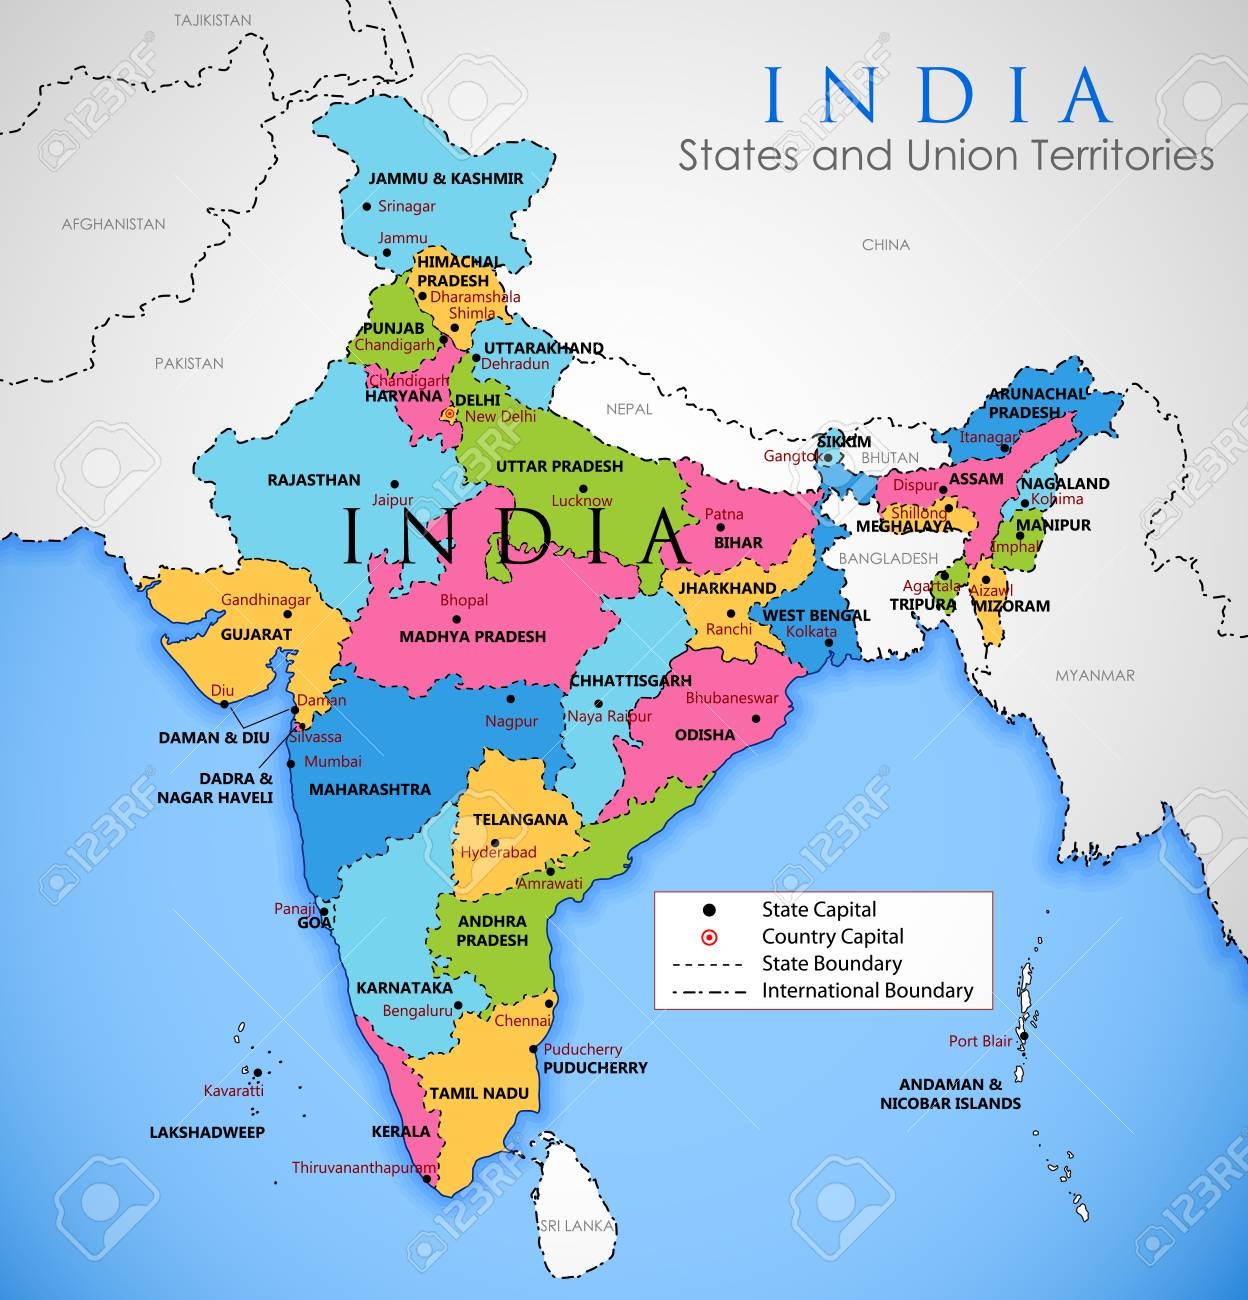 Detailed map of India, Asia with all states and country boundary on india bali map, india se, india map usa, india russia map, india on map, india yellow river map, india south asia, india continent map, india australia map, india heart map, india europe map, india region map, india population growth map, india in asia, mughal empire india map, tohoku japan earthquake 2011 map, india mongol empire map, india iran map, india and surrounding country map, africa map,